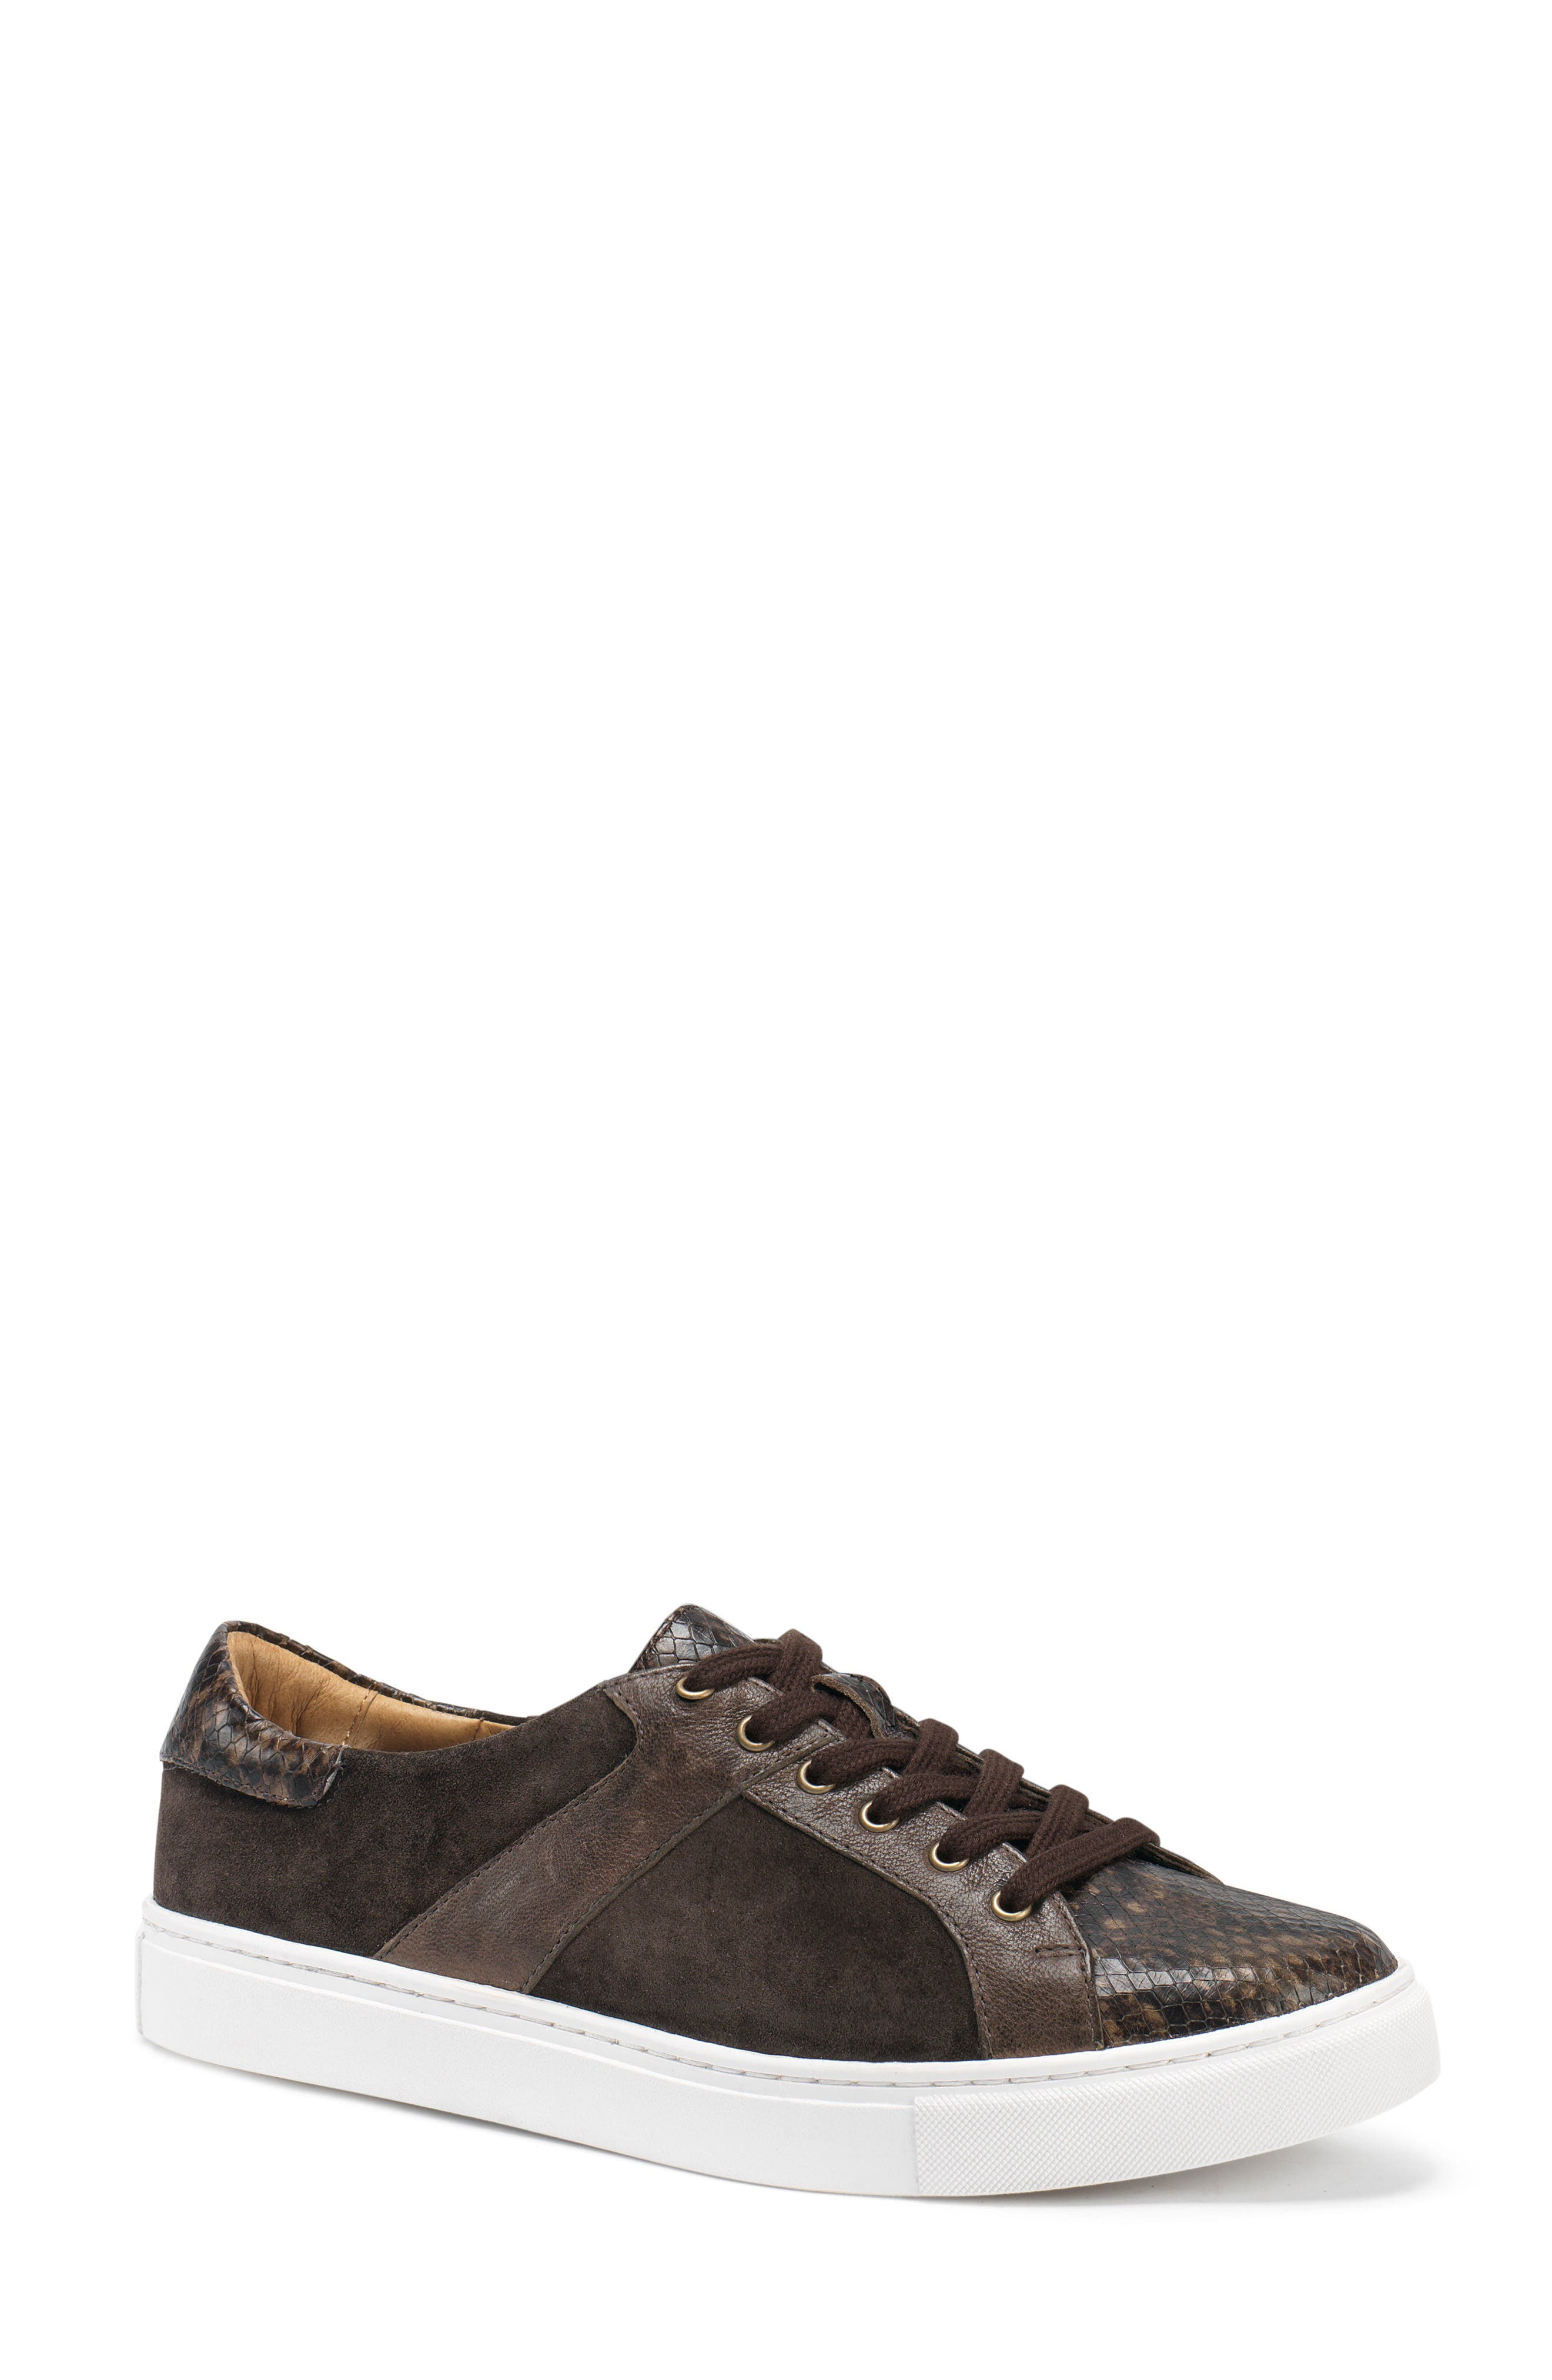 TRASK, Lindsey Sneaker, Main thumbnail 1, color, BROWN PRINT LEATHER